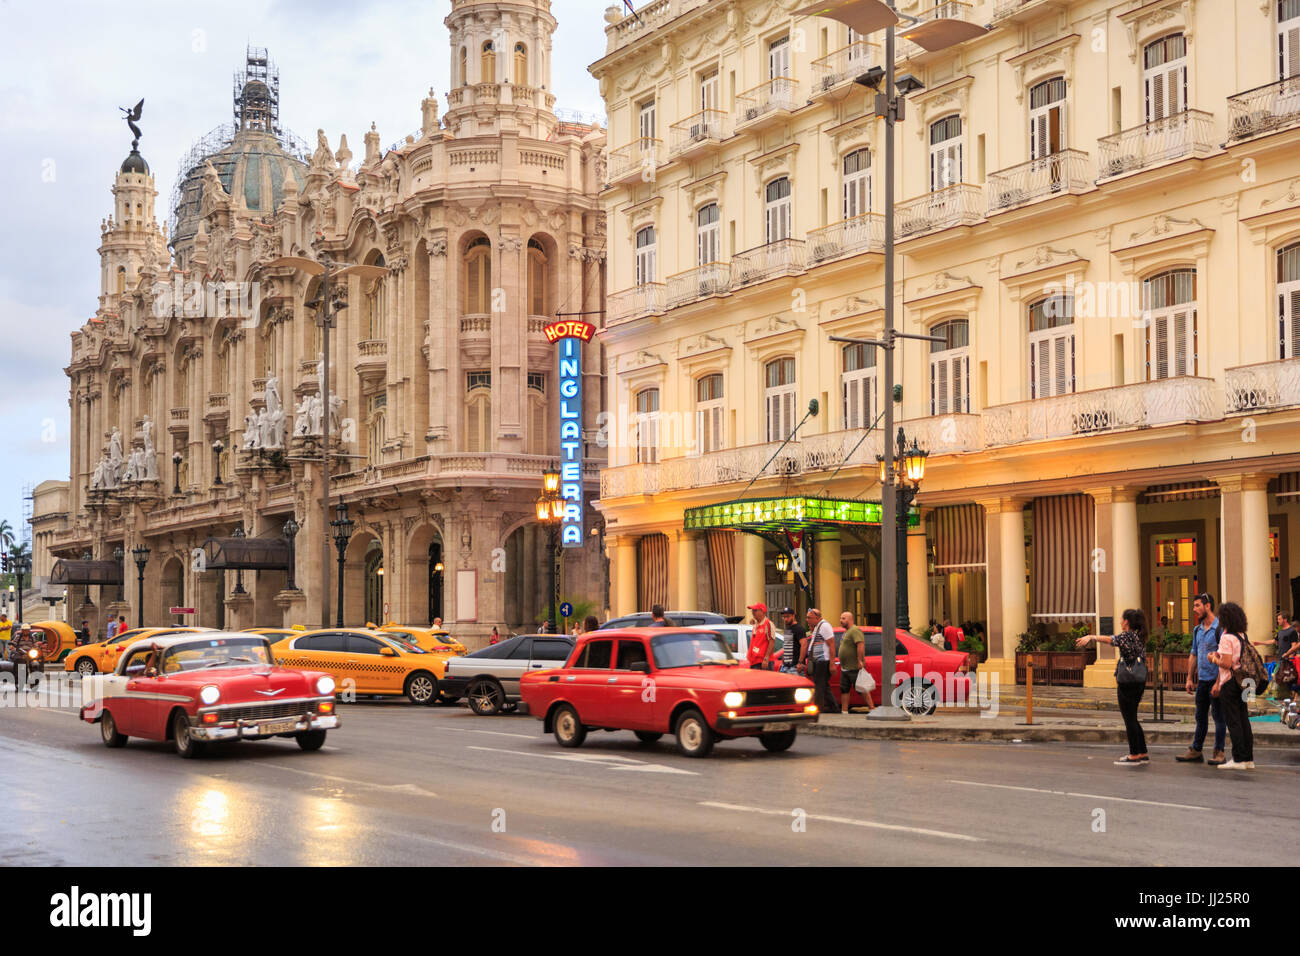 Exterior of the Hotel Inglaterra with classic cars in the street, a restored historic building in Paseo delo Prado, - Stock Image